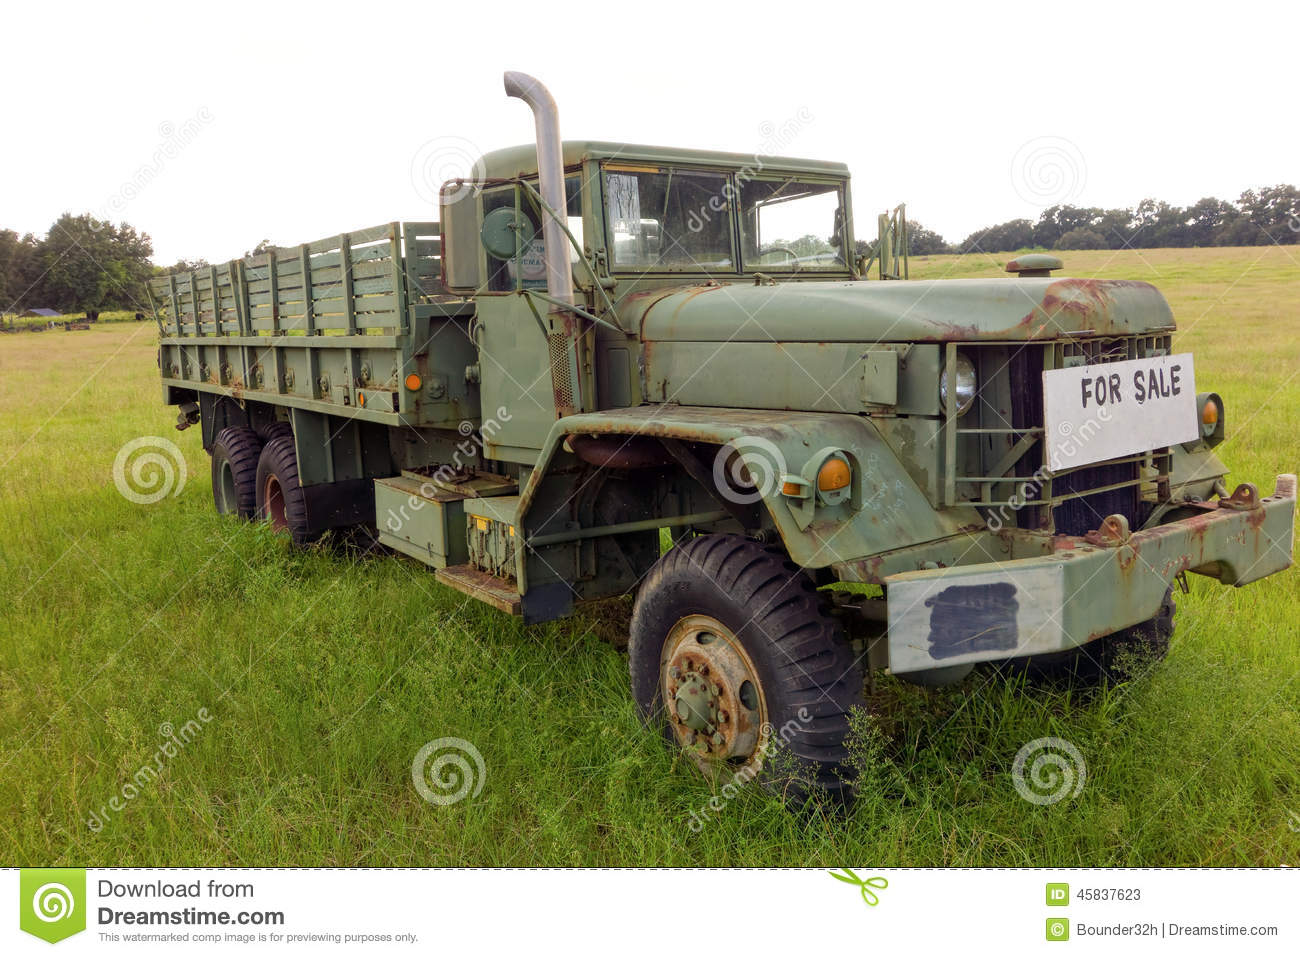 An Old Truck For Sale In Georga Editorial Stock Photo - Image of ...